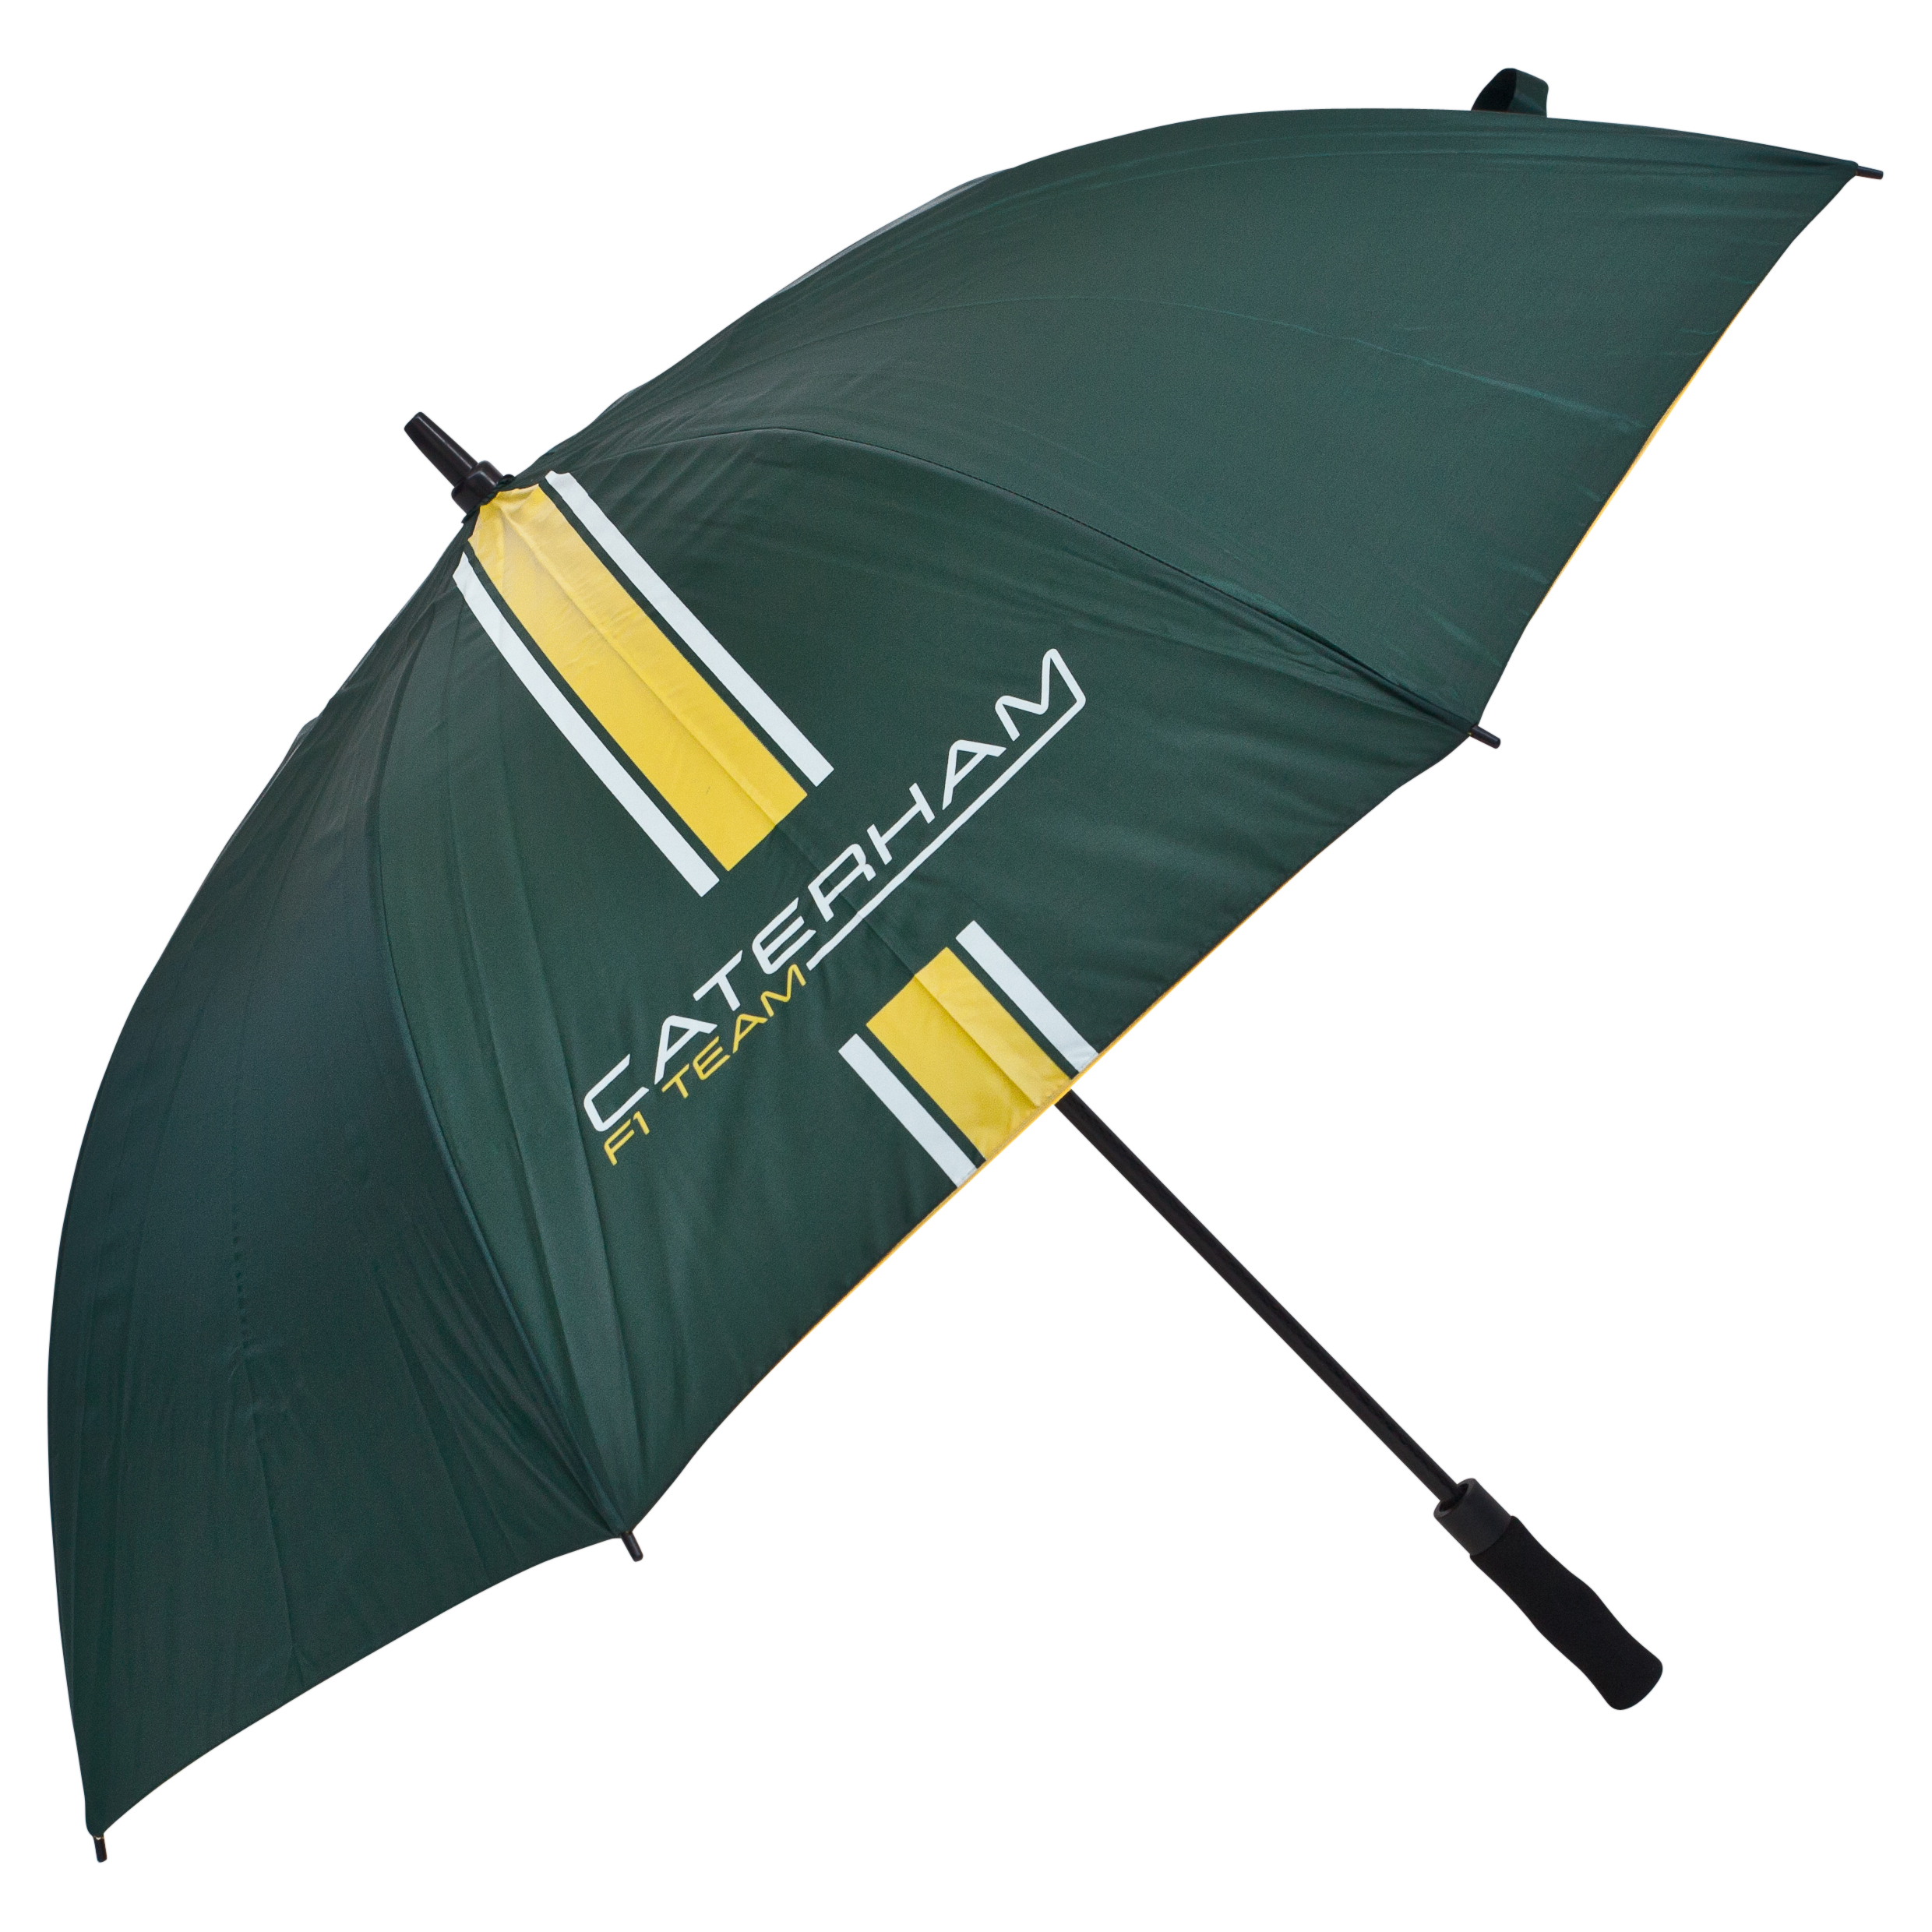 Caterham F1 Team Umbrella